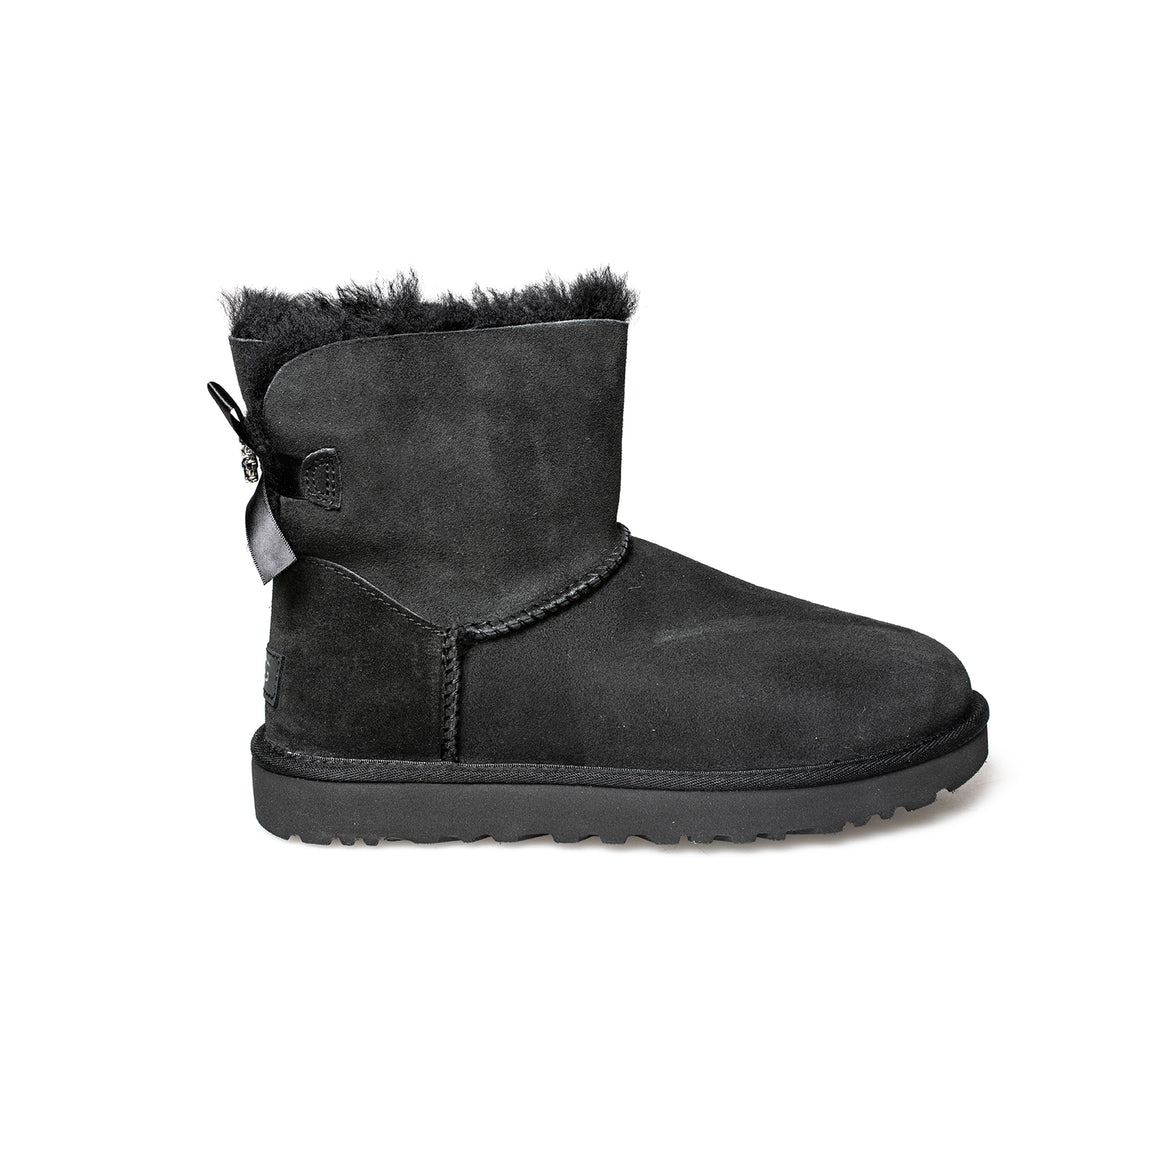 UGG Mini Bailey Brooch Black Boots - Women's